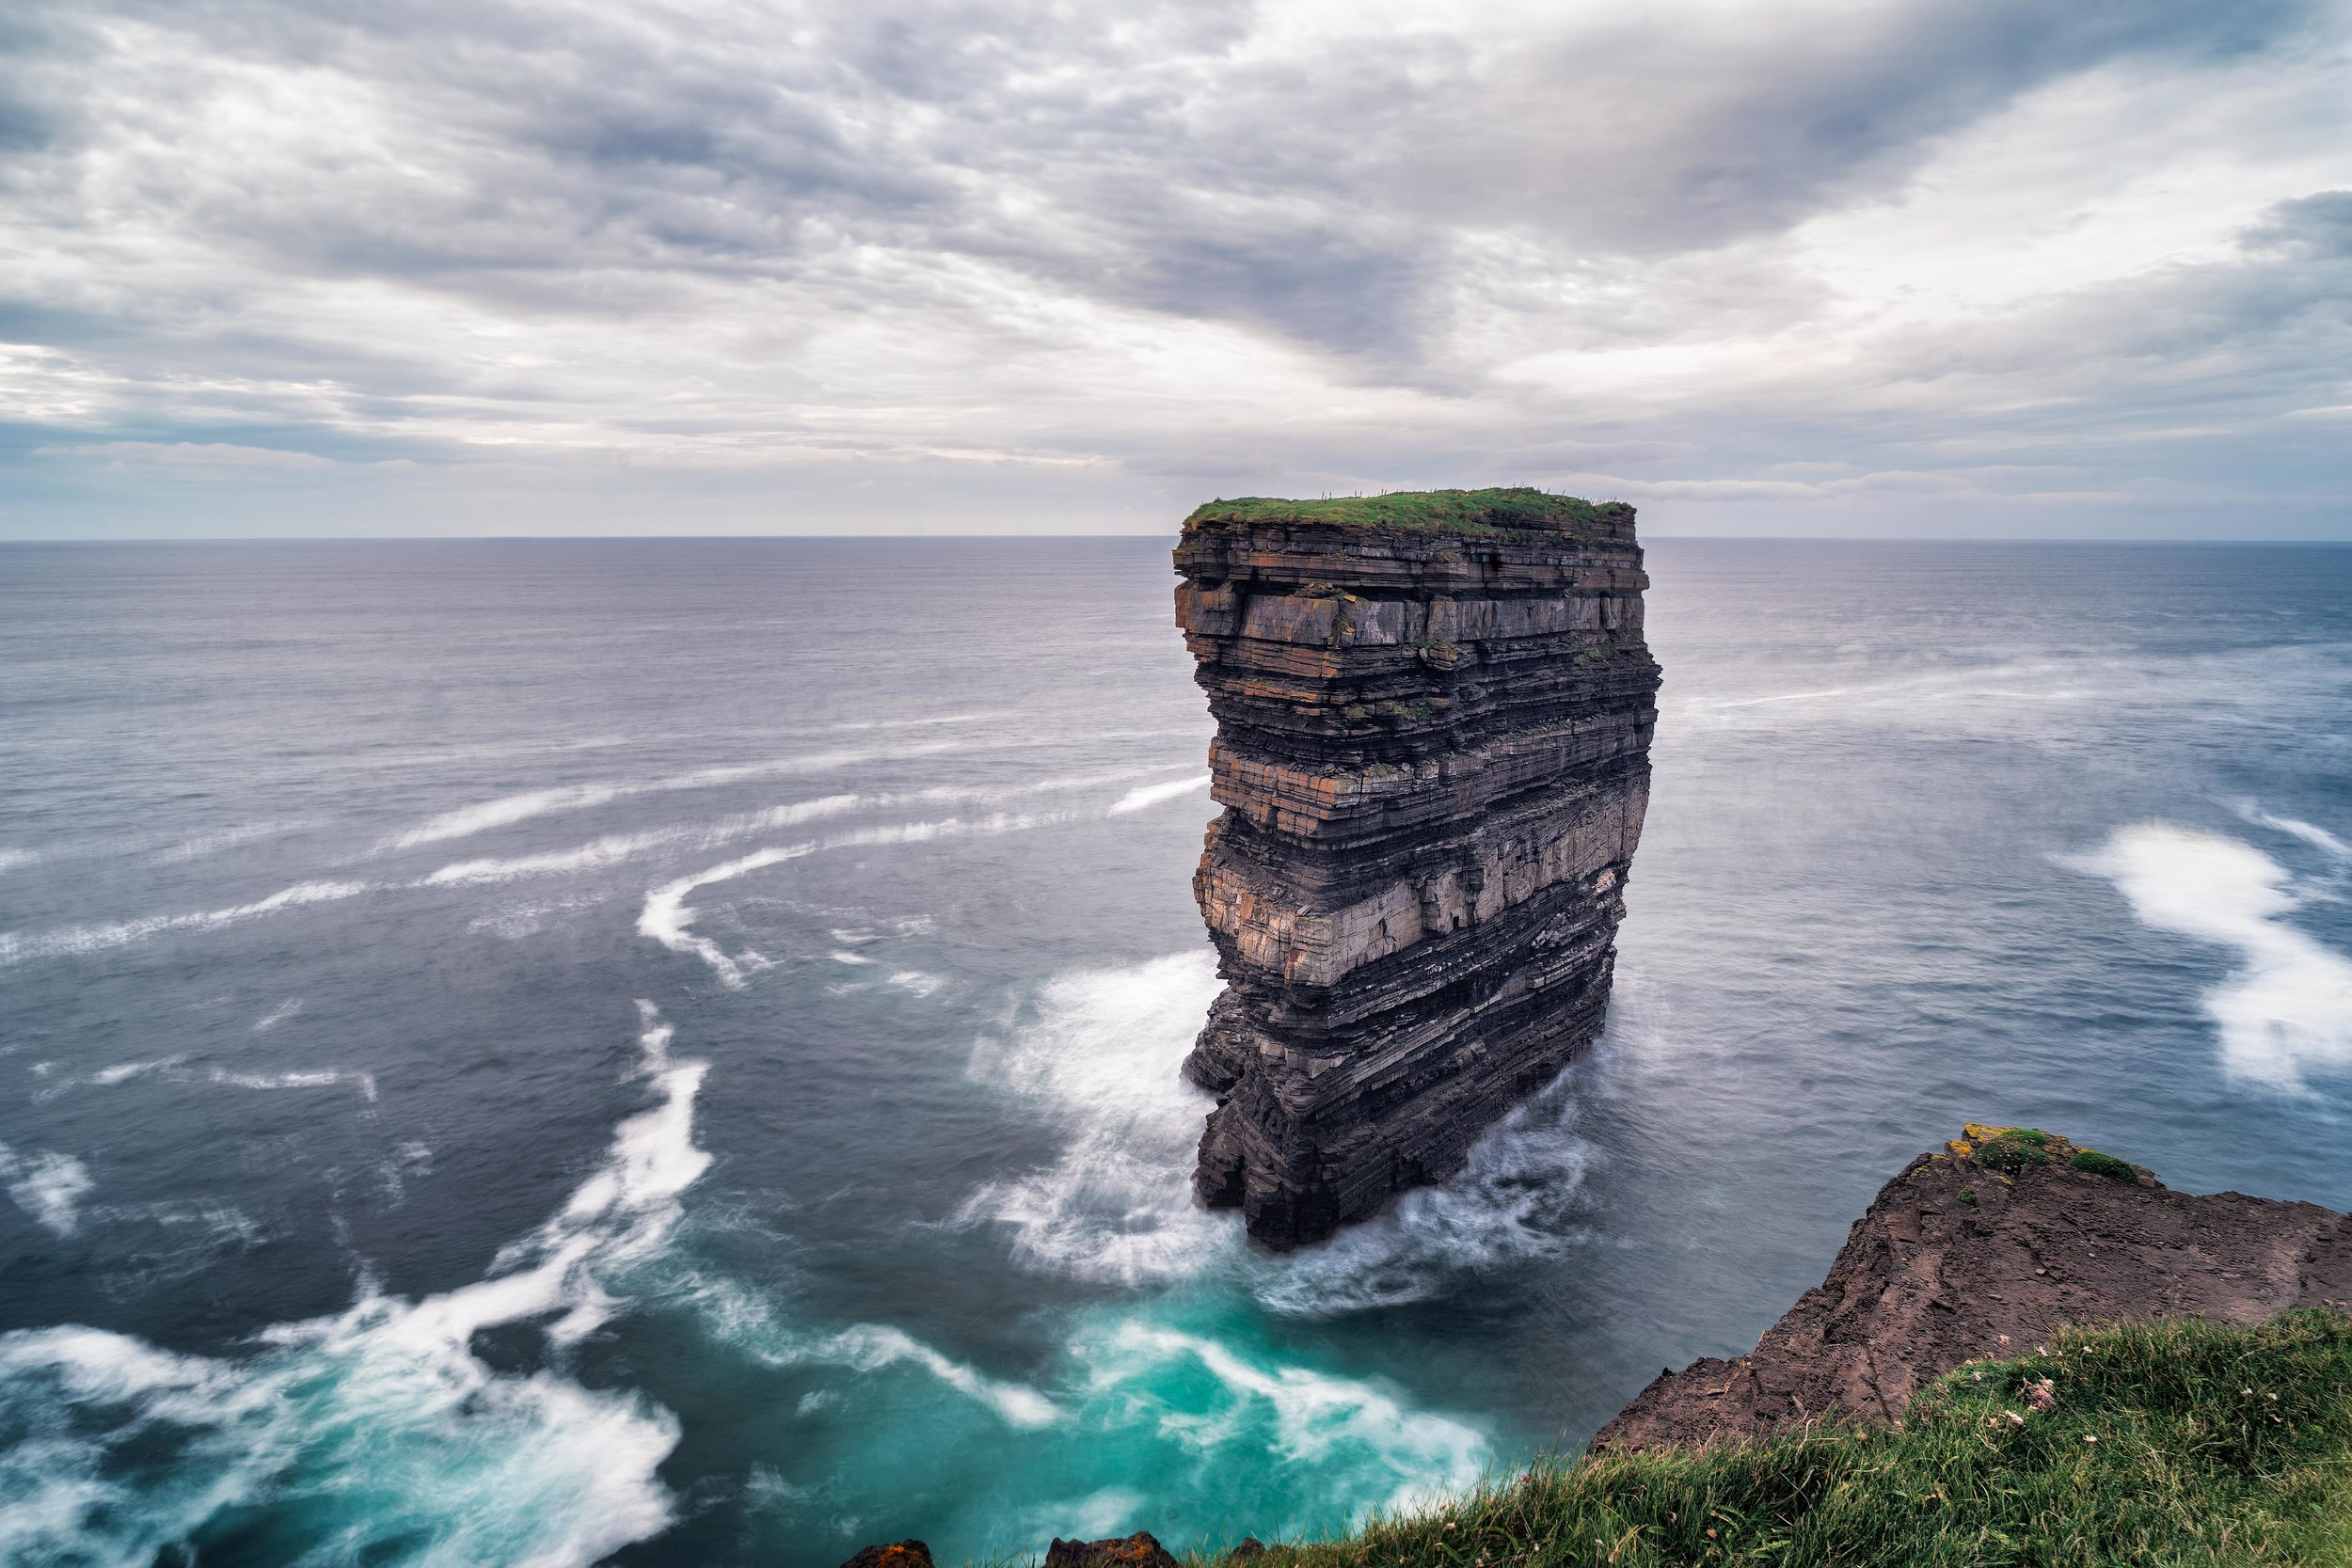 the mighty sea stack at down Patrick head